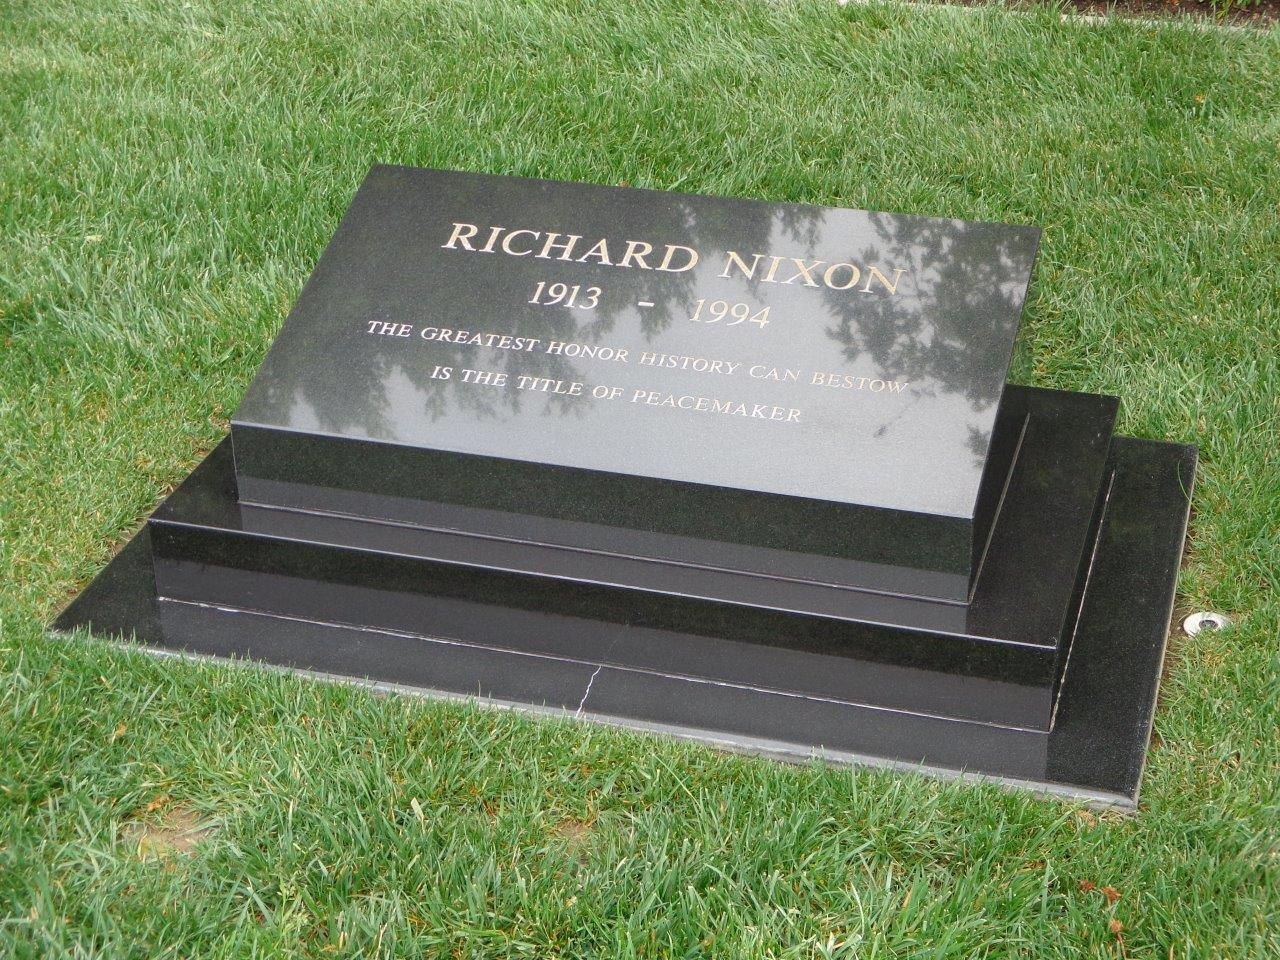 Richard Nixon tomb